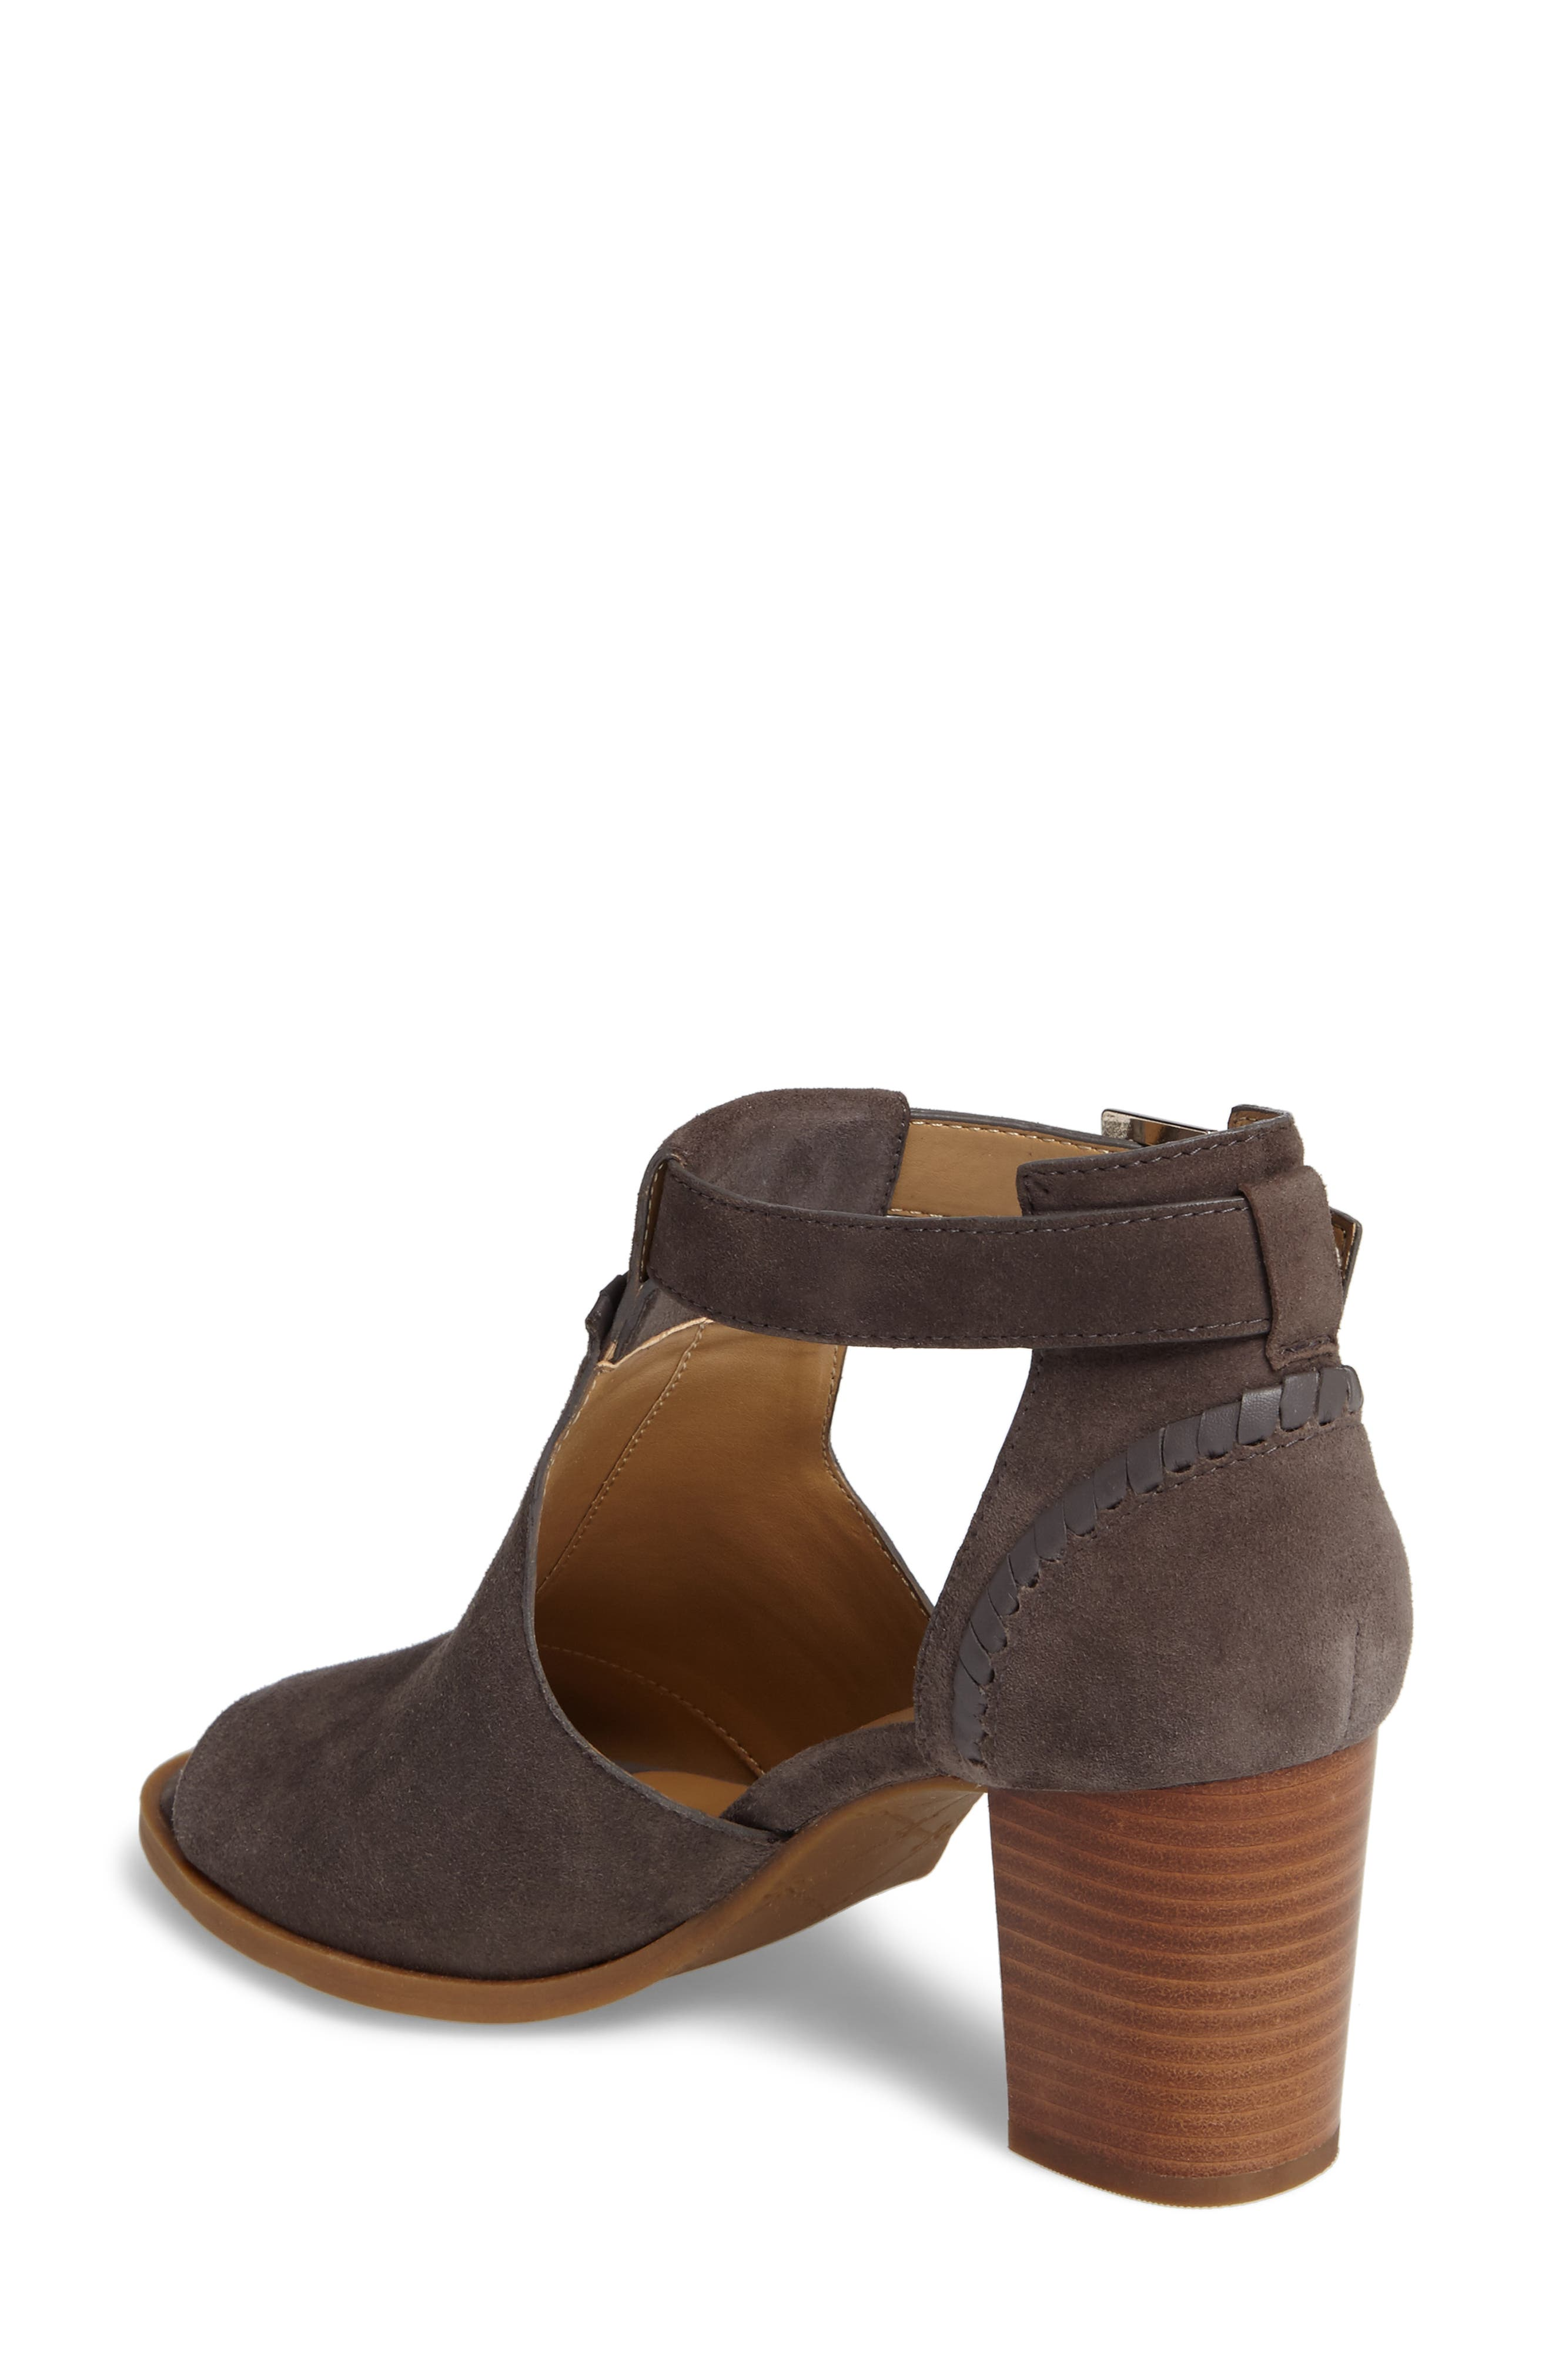 Cameron Block Heel Sandal,                             Alternate thumbnail 2, color,                             Charcoal Suede